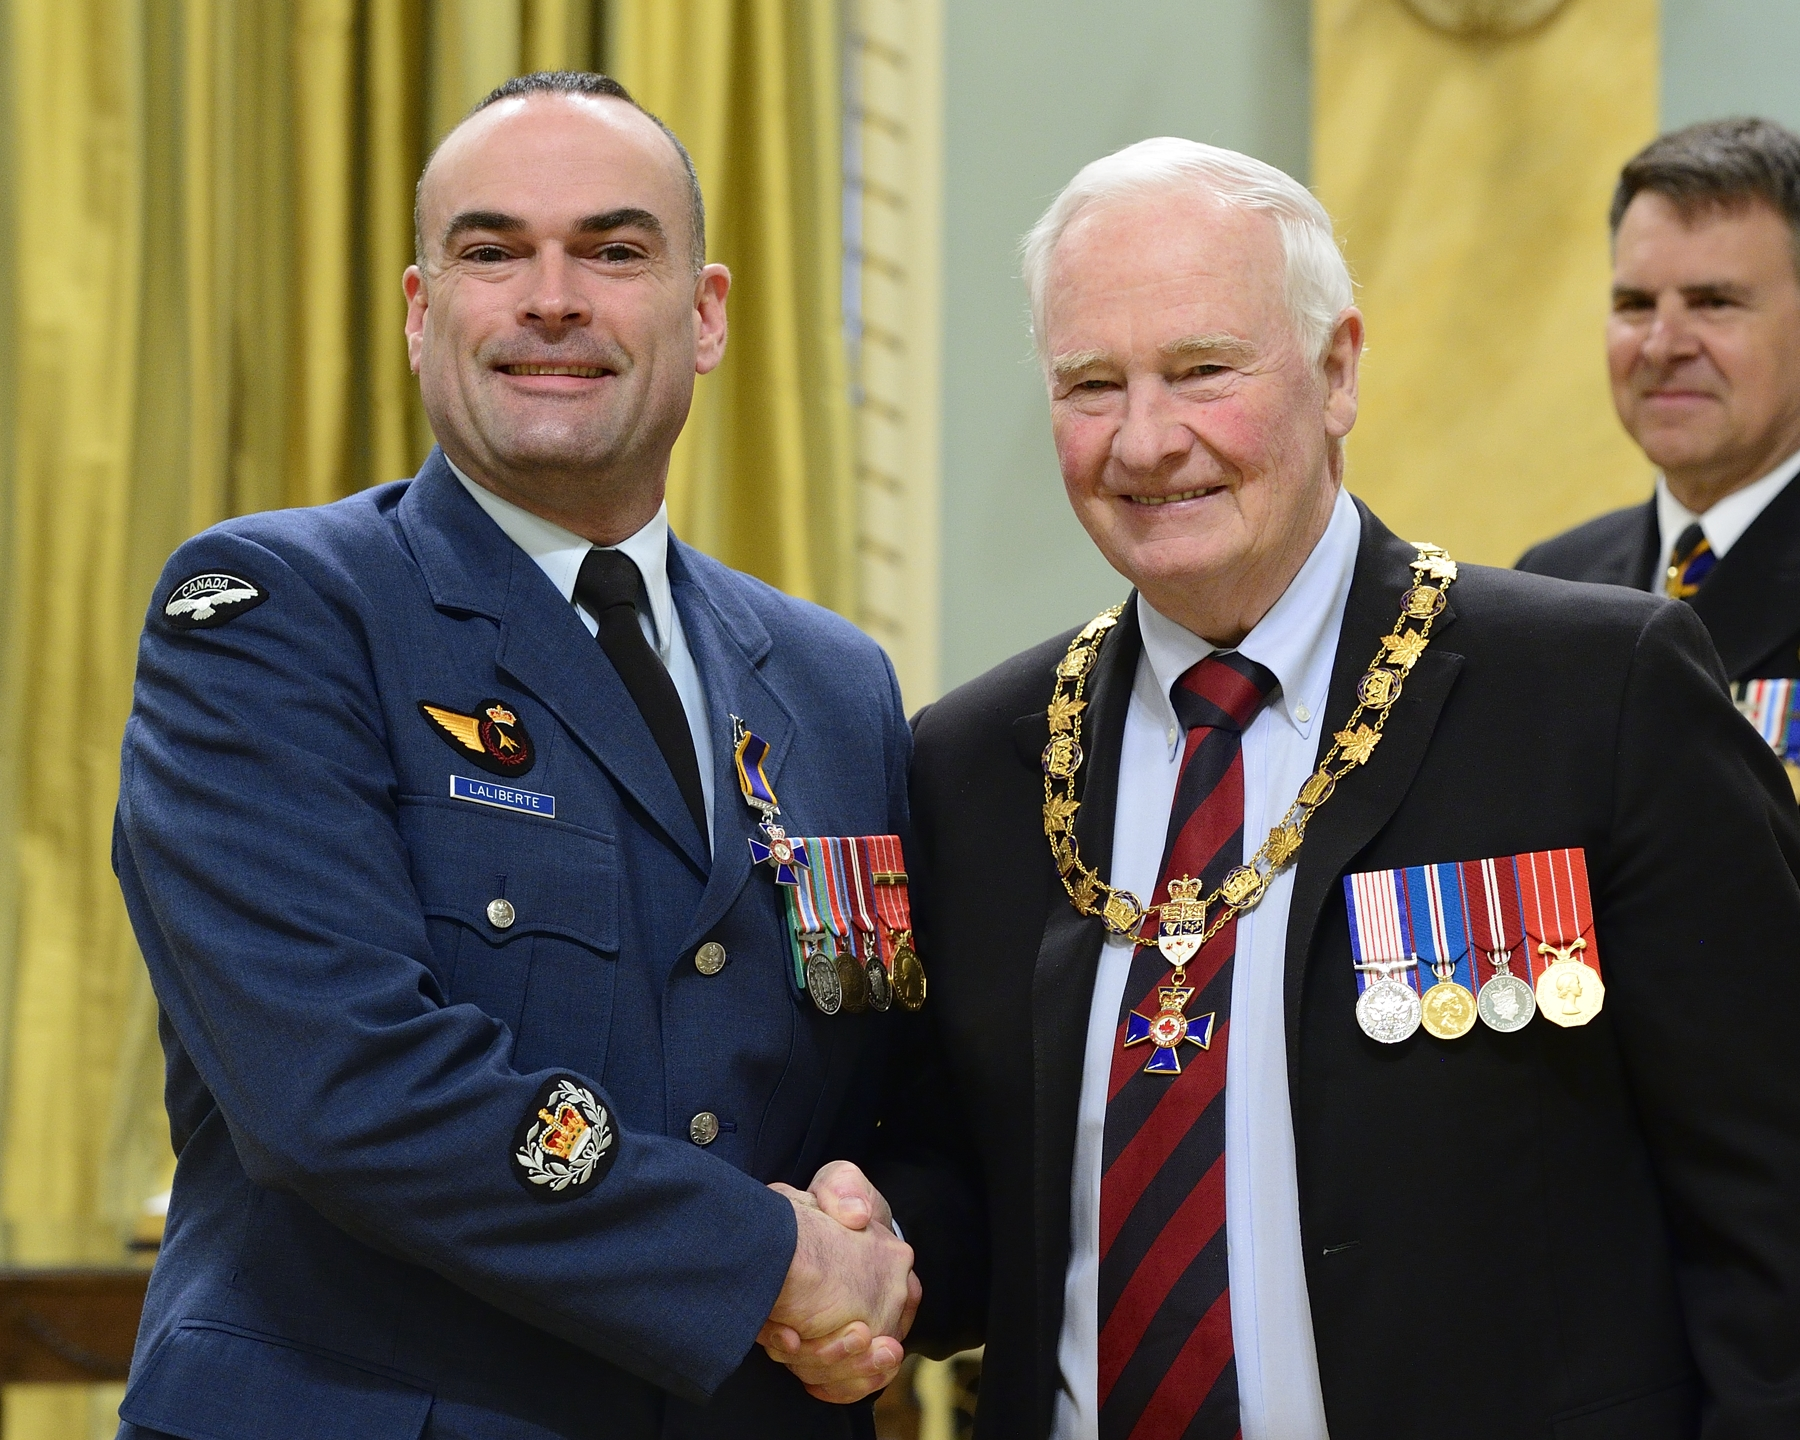 Governor General and Commander-in-Chief of Canada David Johnston presents the Order of Military Merit to Master Warrant Officer Joseph Guy Benoit Laliberté, MMM, CD, from the Office of the Director General Aerospace Equipment Program Management, Ottawa, Ontario. PHOTO: Sergeant Johanie Mahieu, Rideau Hall ©, GG05-2017-0075-047-laliberte